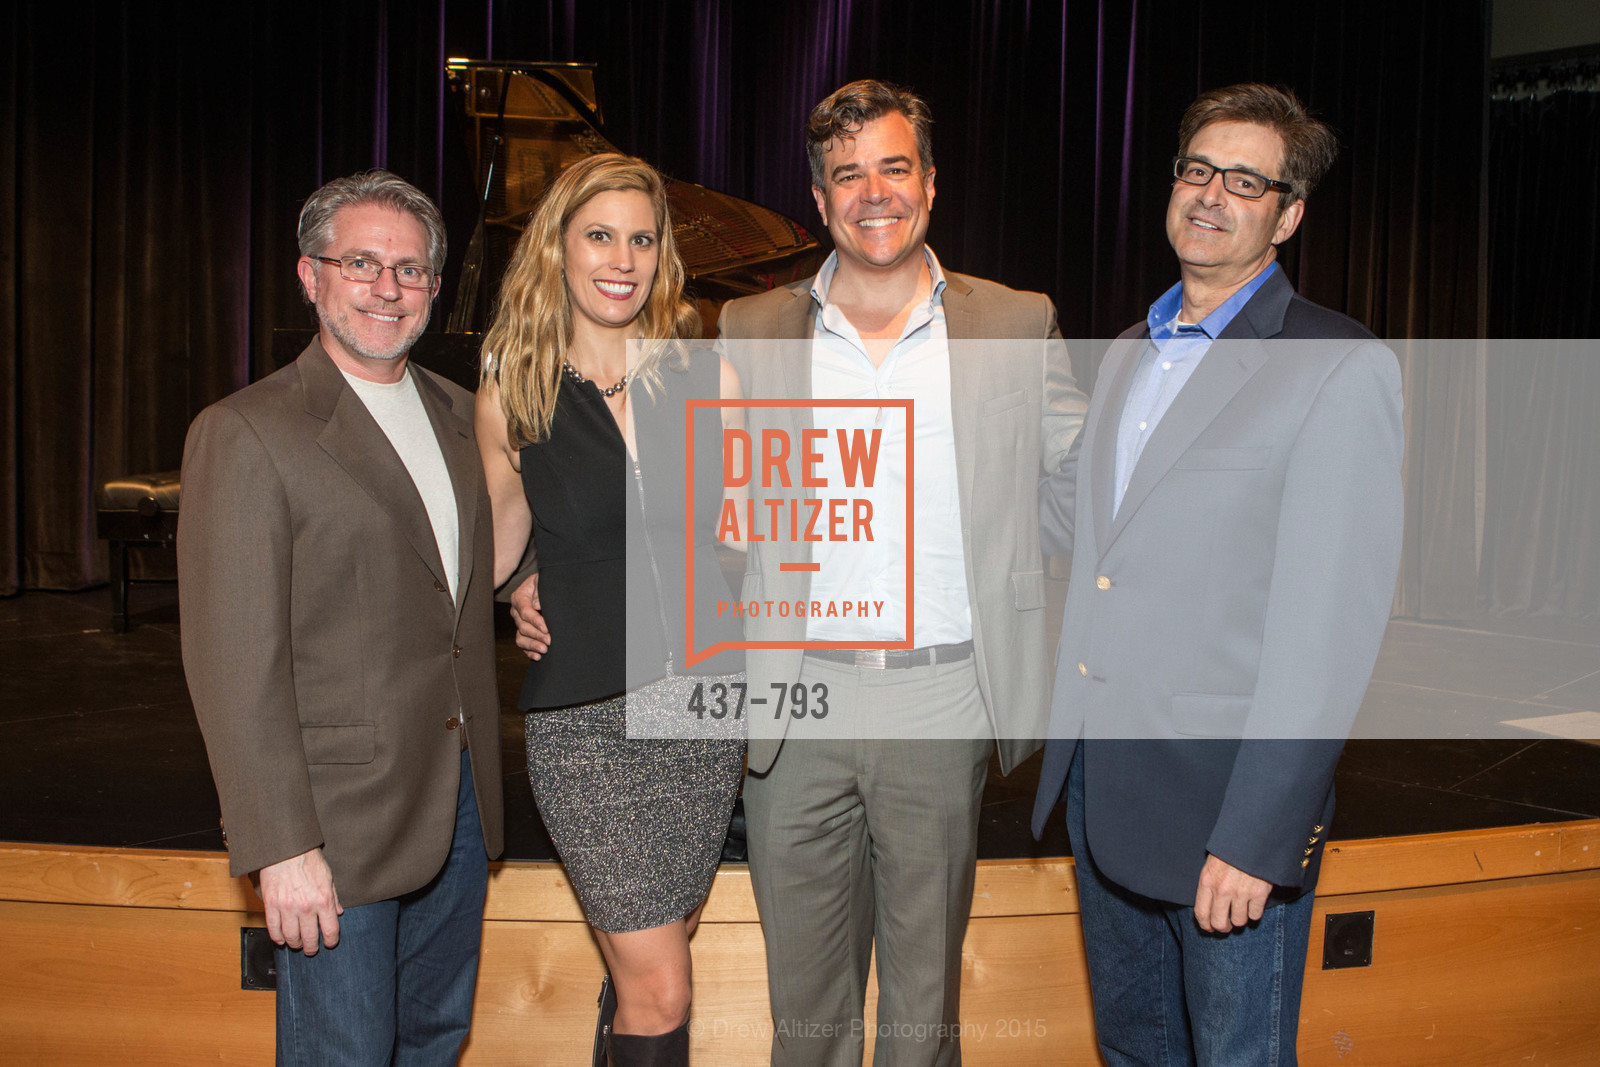 Andreas Papalilous, Johnna Marcus, Jack Schafer, Cary Calderon, SF BRAVO CLUB Sneak Peek at the EXPLORATORIUM, US, April 23rd, 2015,Drew Altizer, Drew Altizer Photography, full-service event agency, private events, San Francisco photographer, photographer California